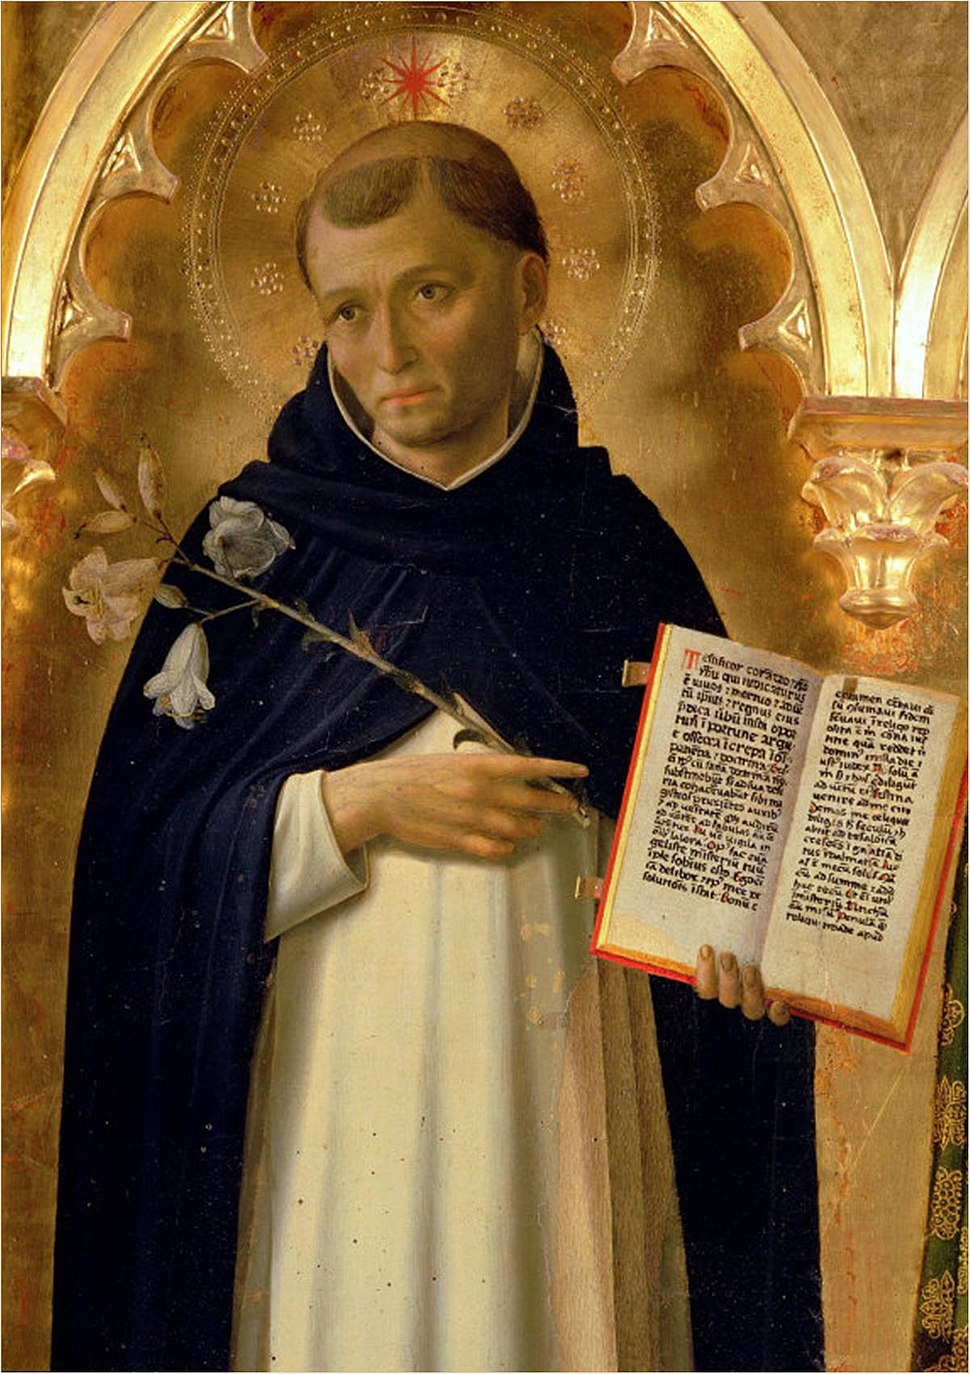 The Perugia Altarpiece, Side Panel Depicting St. Dominic